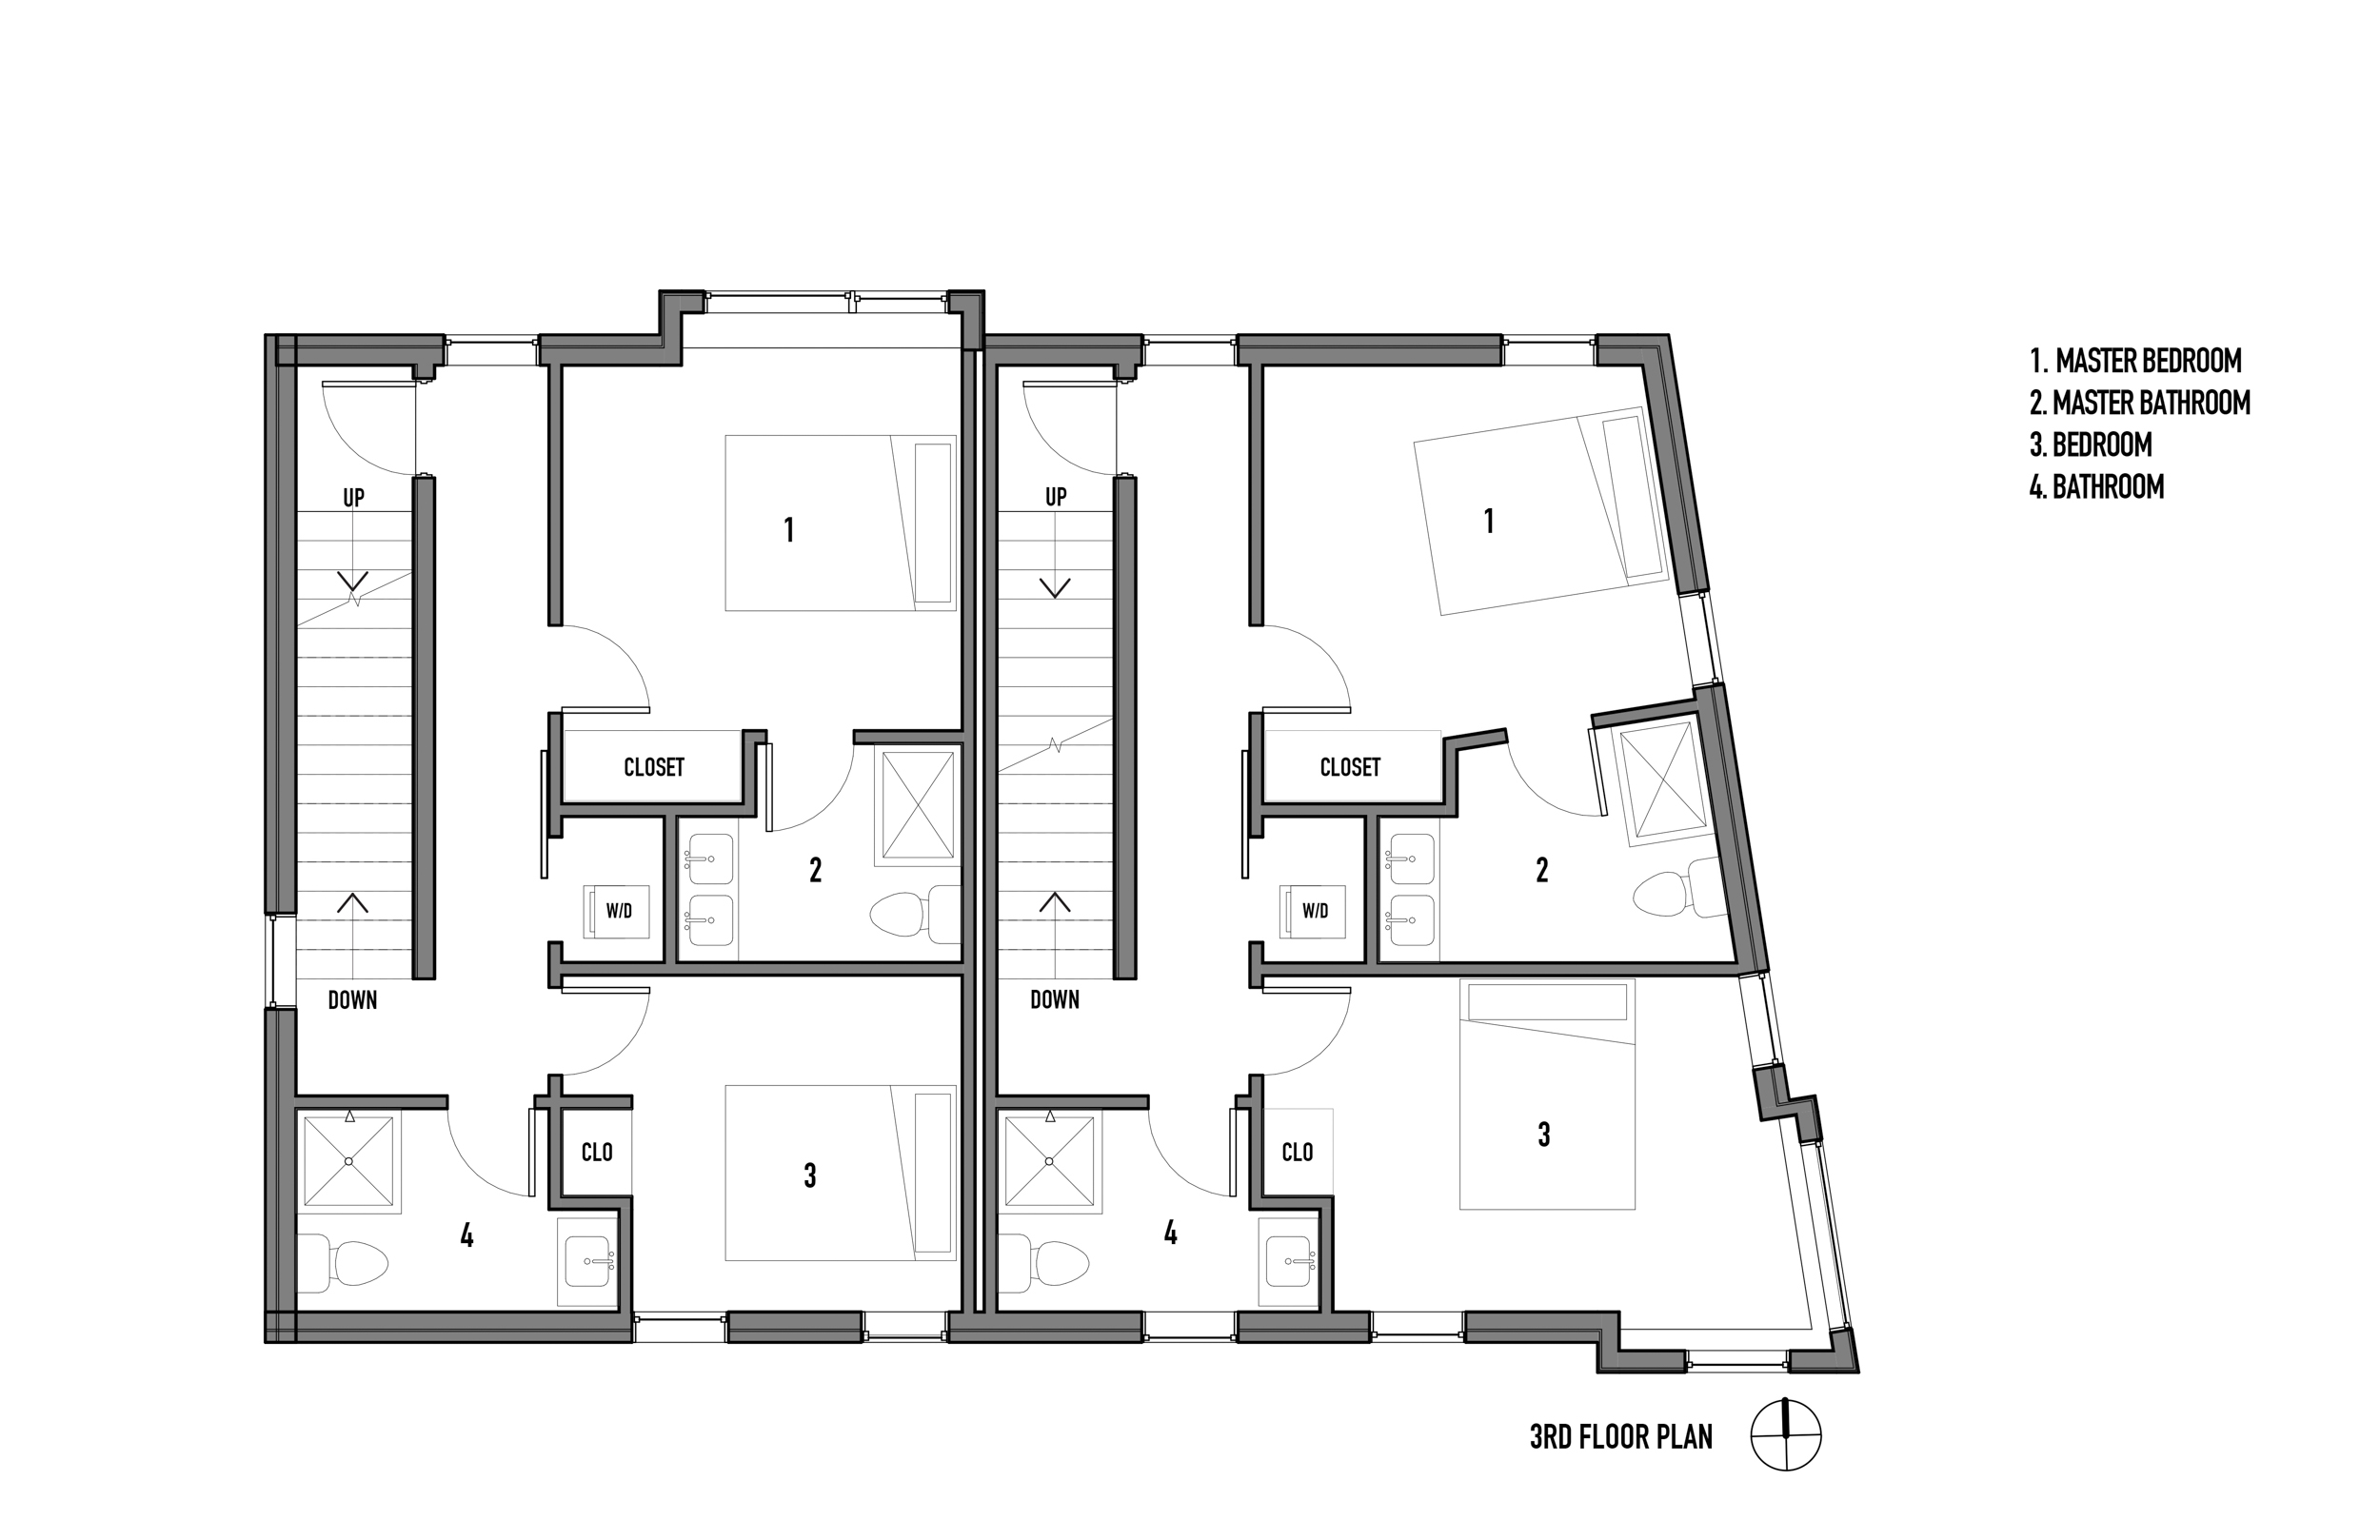 pairallel-wc-studio-architects-townhomes-Third-Floor-Plan.jpg